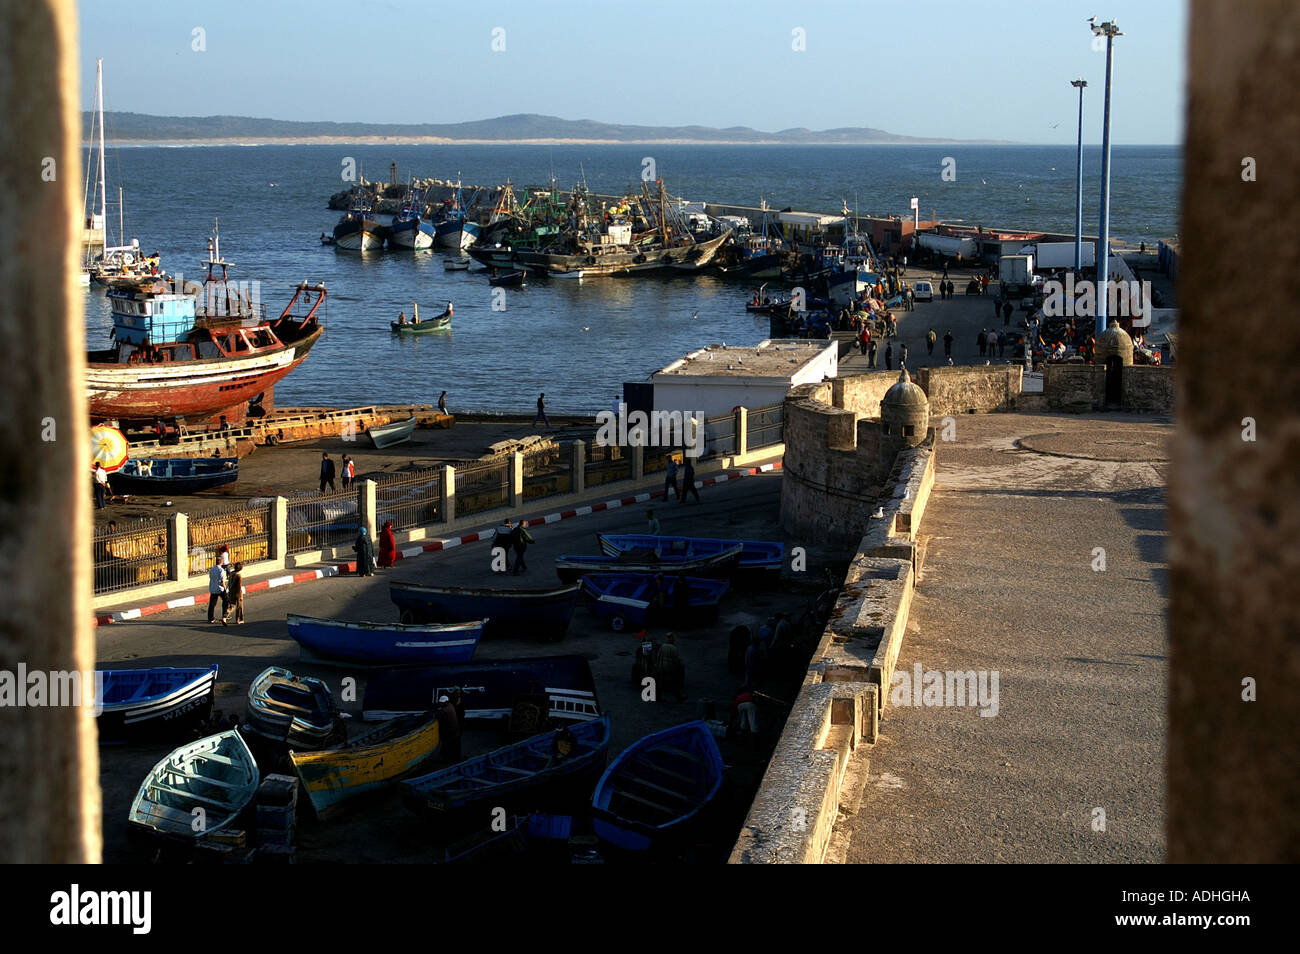 Fishing boats and craft from Turret Sqala du Port harbour Essaouira Morocco - Stock Image